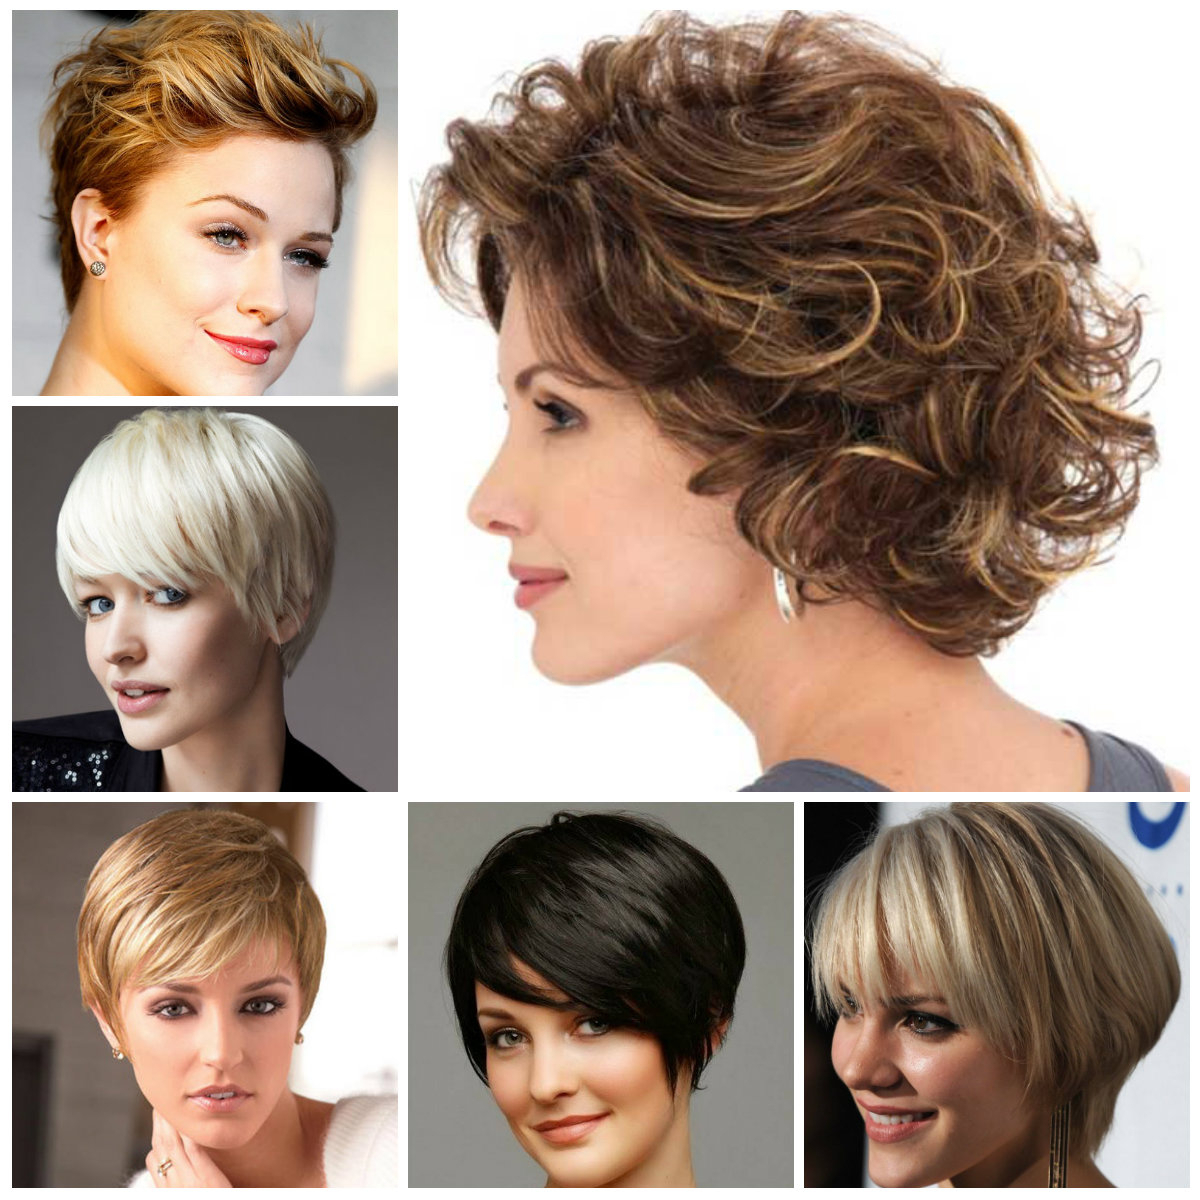 Short Layered Hairstyle Ideas For 2019 | Hairstyles For Women 2019 Intended For Long Hair Short Layers Hairstyles (View 25 of 25)